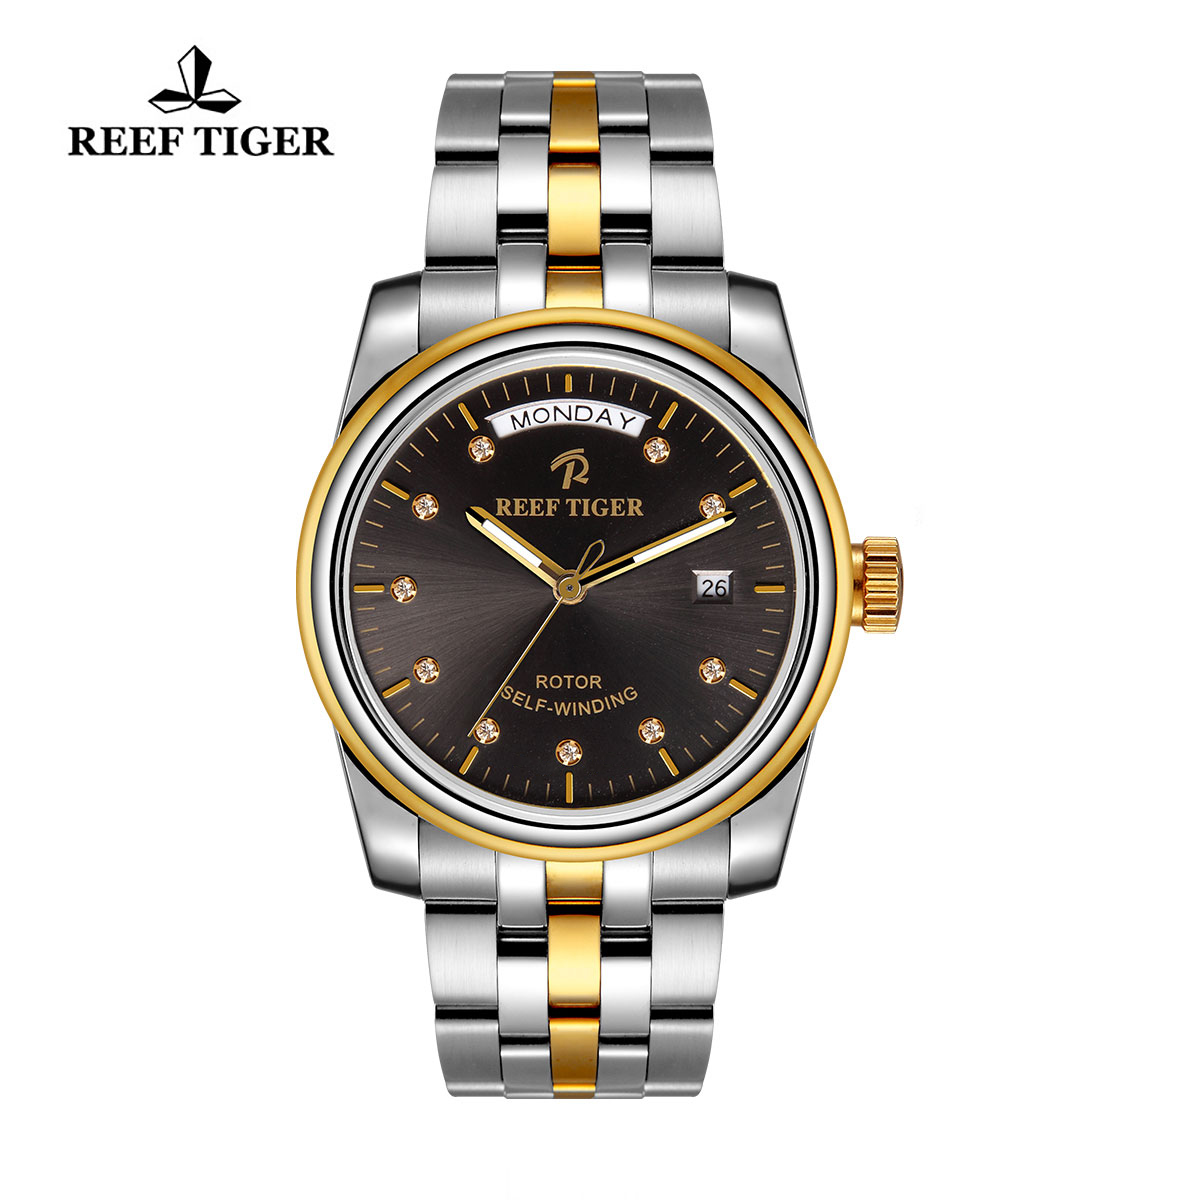 Reef Tiger Dress Watch with Day-Date Champagne Dial RGA829-TBT